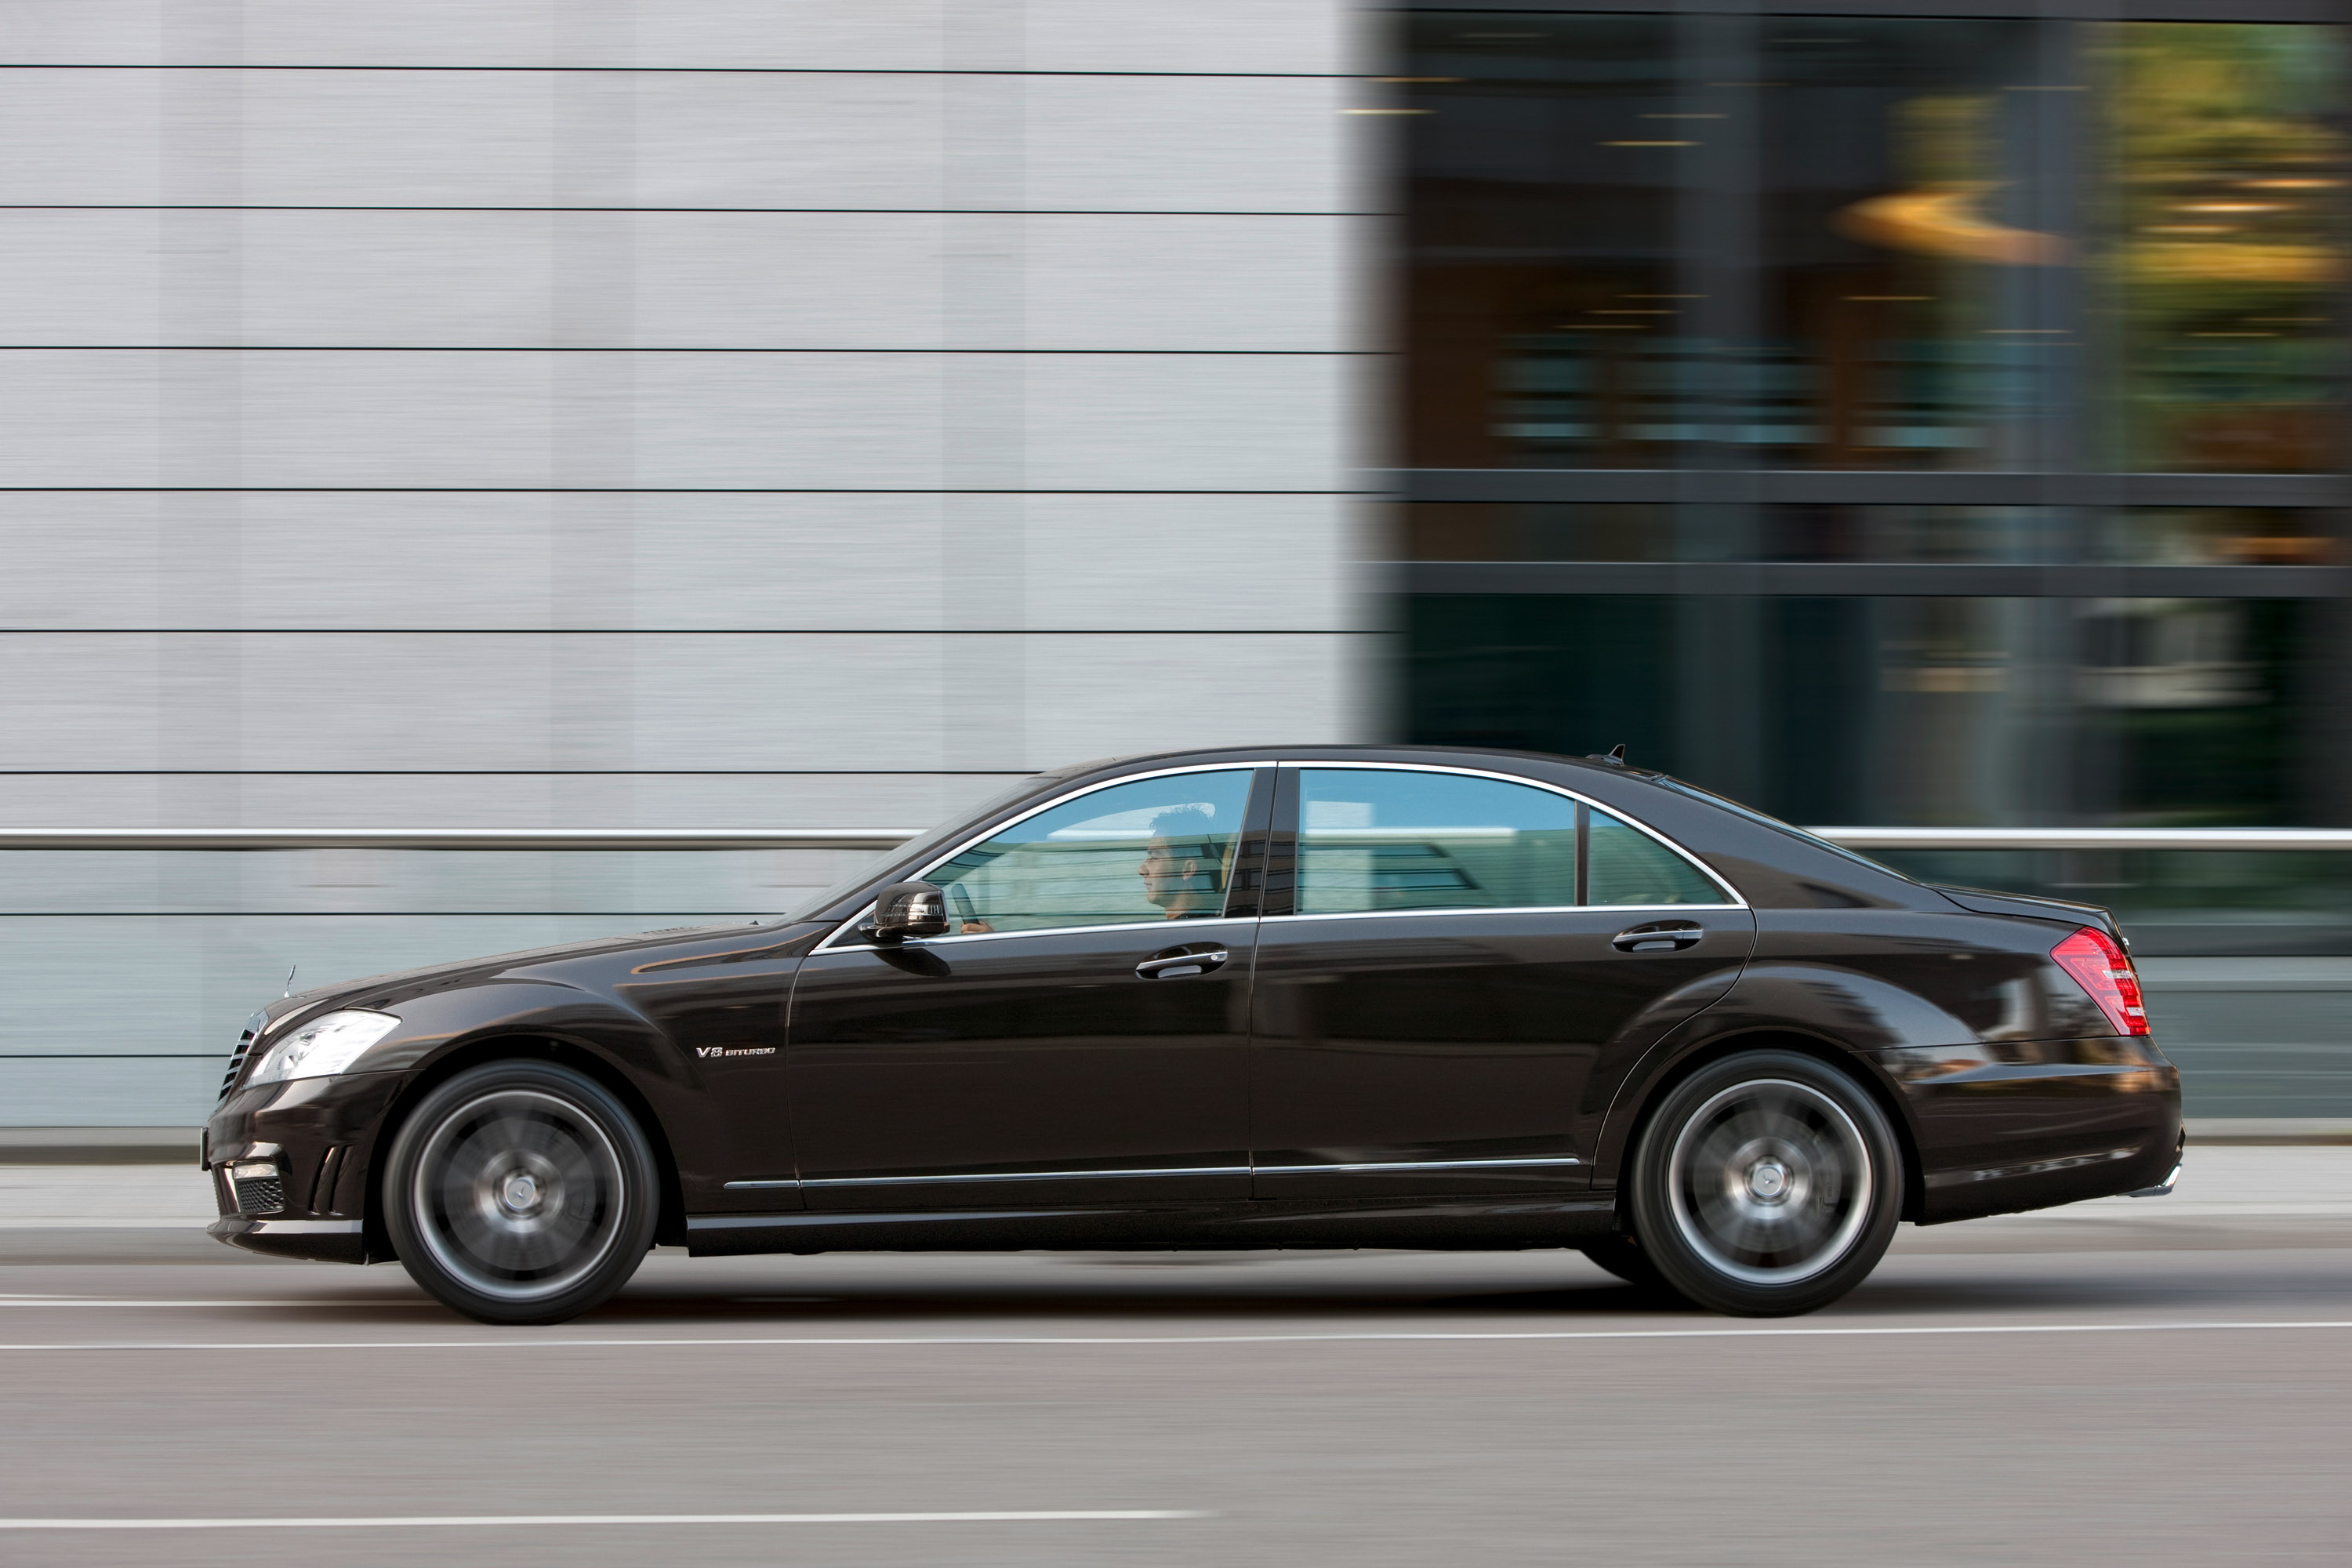 Mercedes-Benz S63 AMG - The ultimate high-performance седан - фотография №12